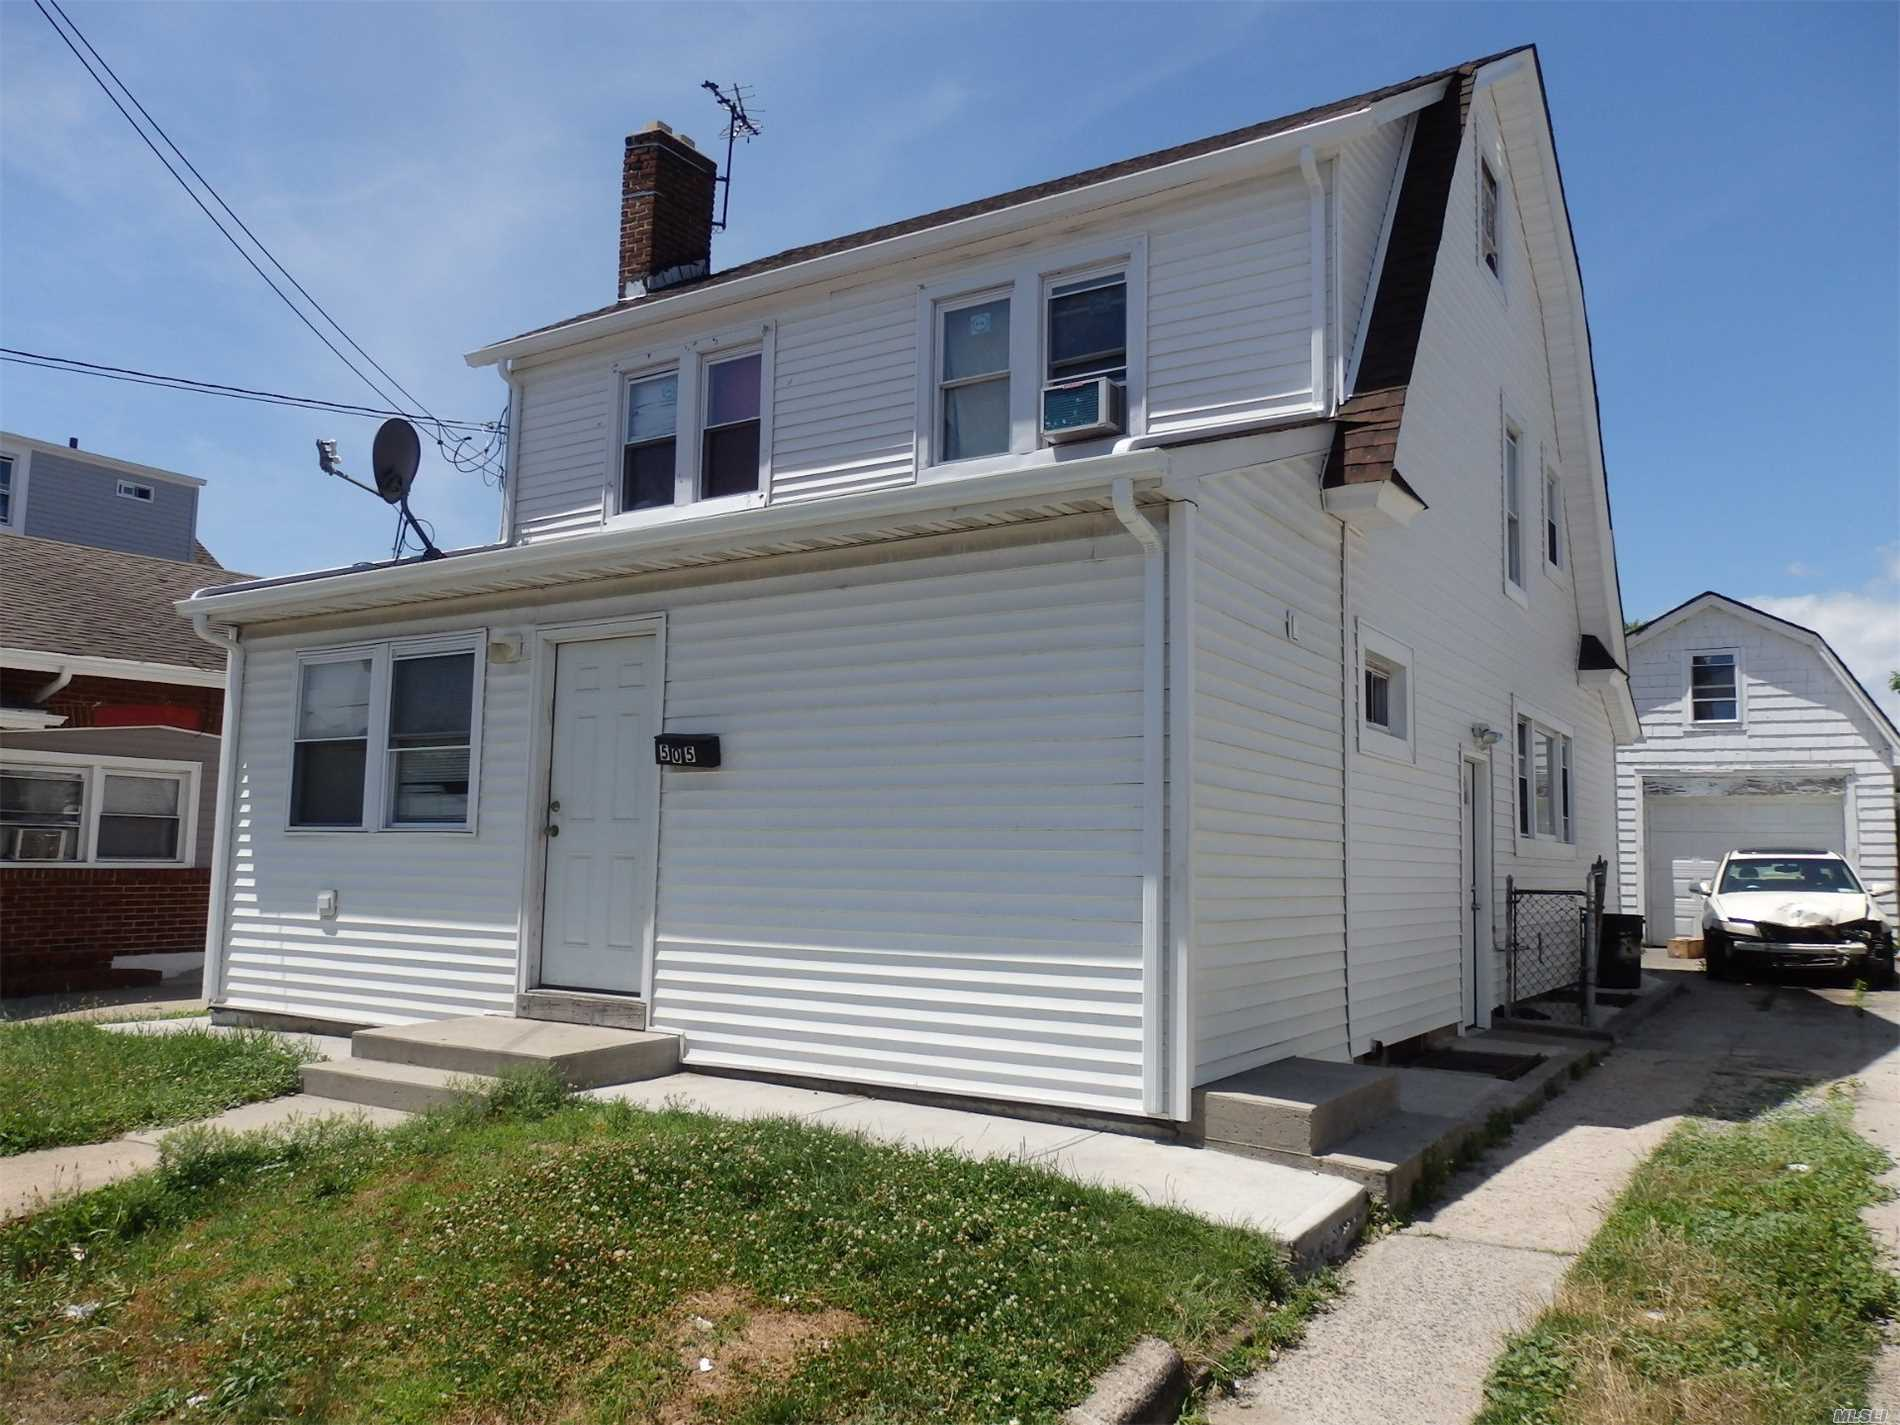 Investors And All Cash Buyers Only. Amazing Income Opportunity. Gross Rent Roll Over $33, 000. New Boiler, Hot Water Heater, Electrical, Siding And Roof. Being Sold Occupied With All Tenants In Place.Not An Reo, Not A Short Sale. Can Be Sold In Conjunction With 501 Fulton And 497 Fulton.